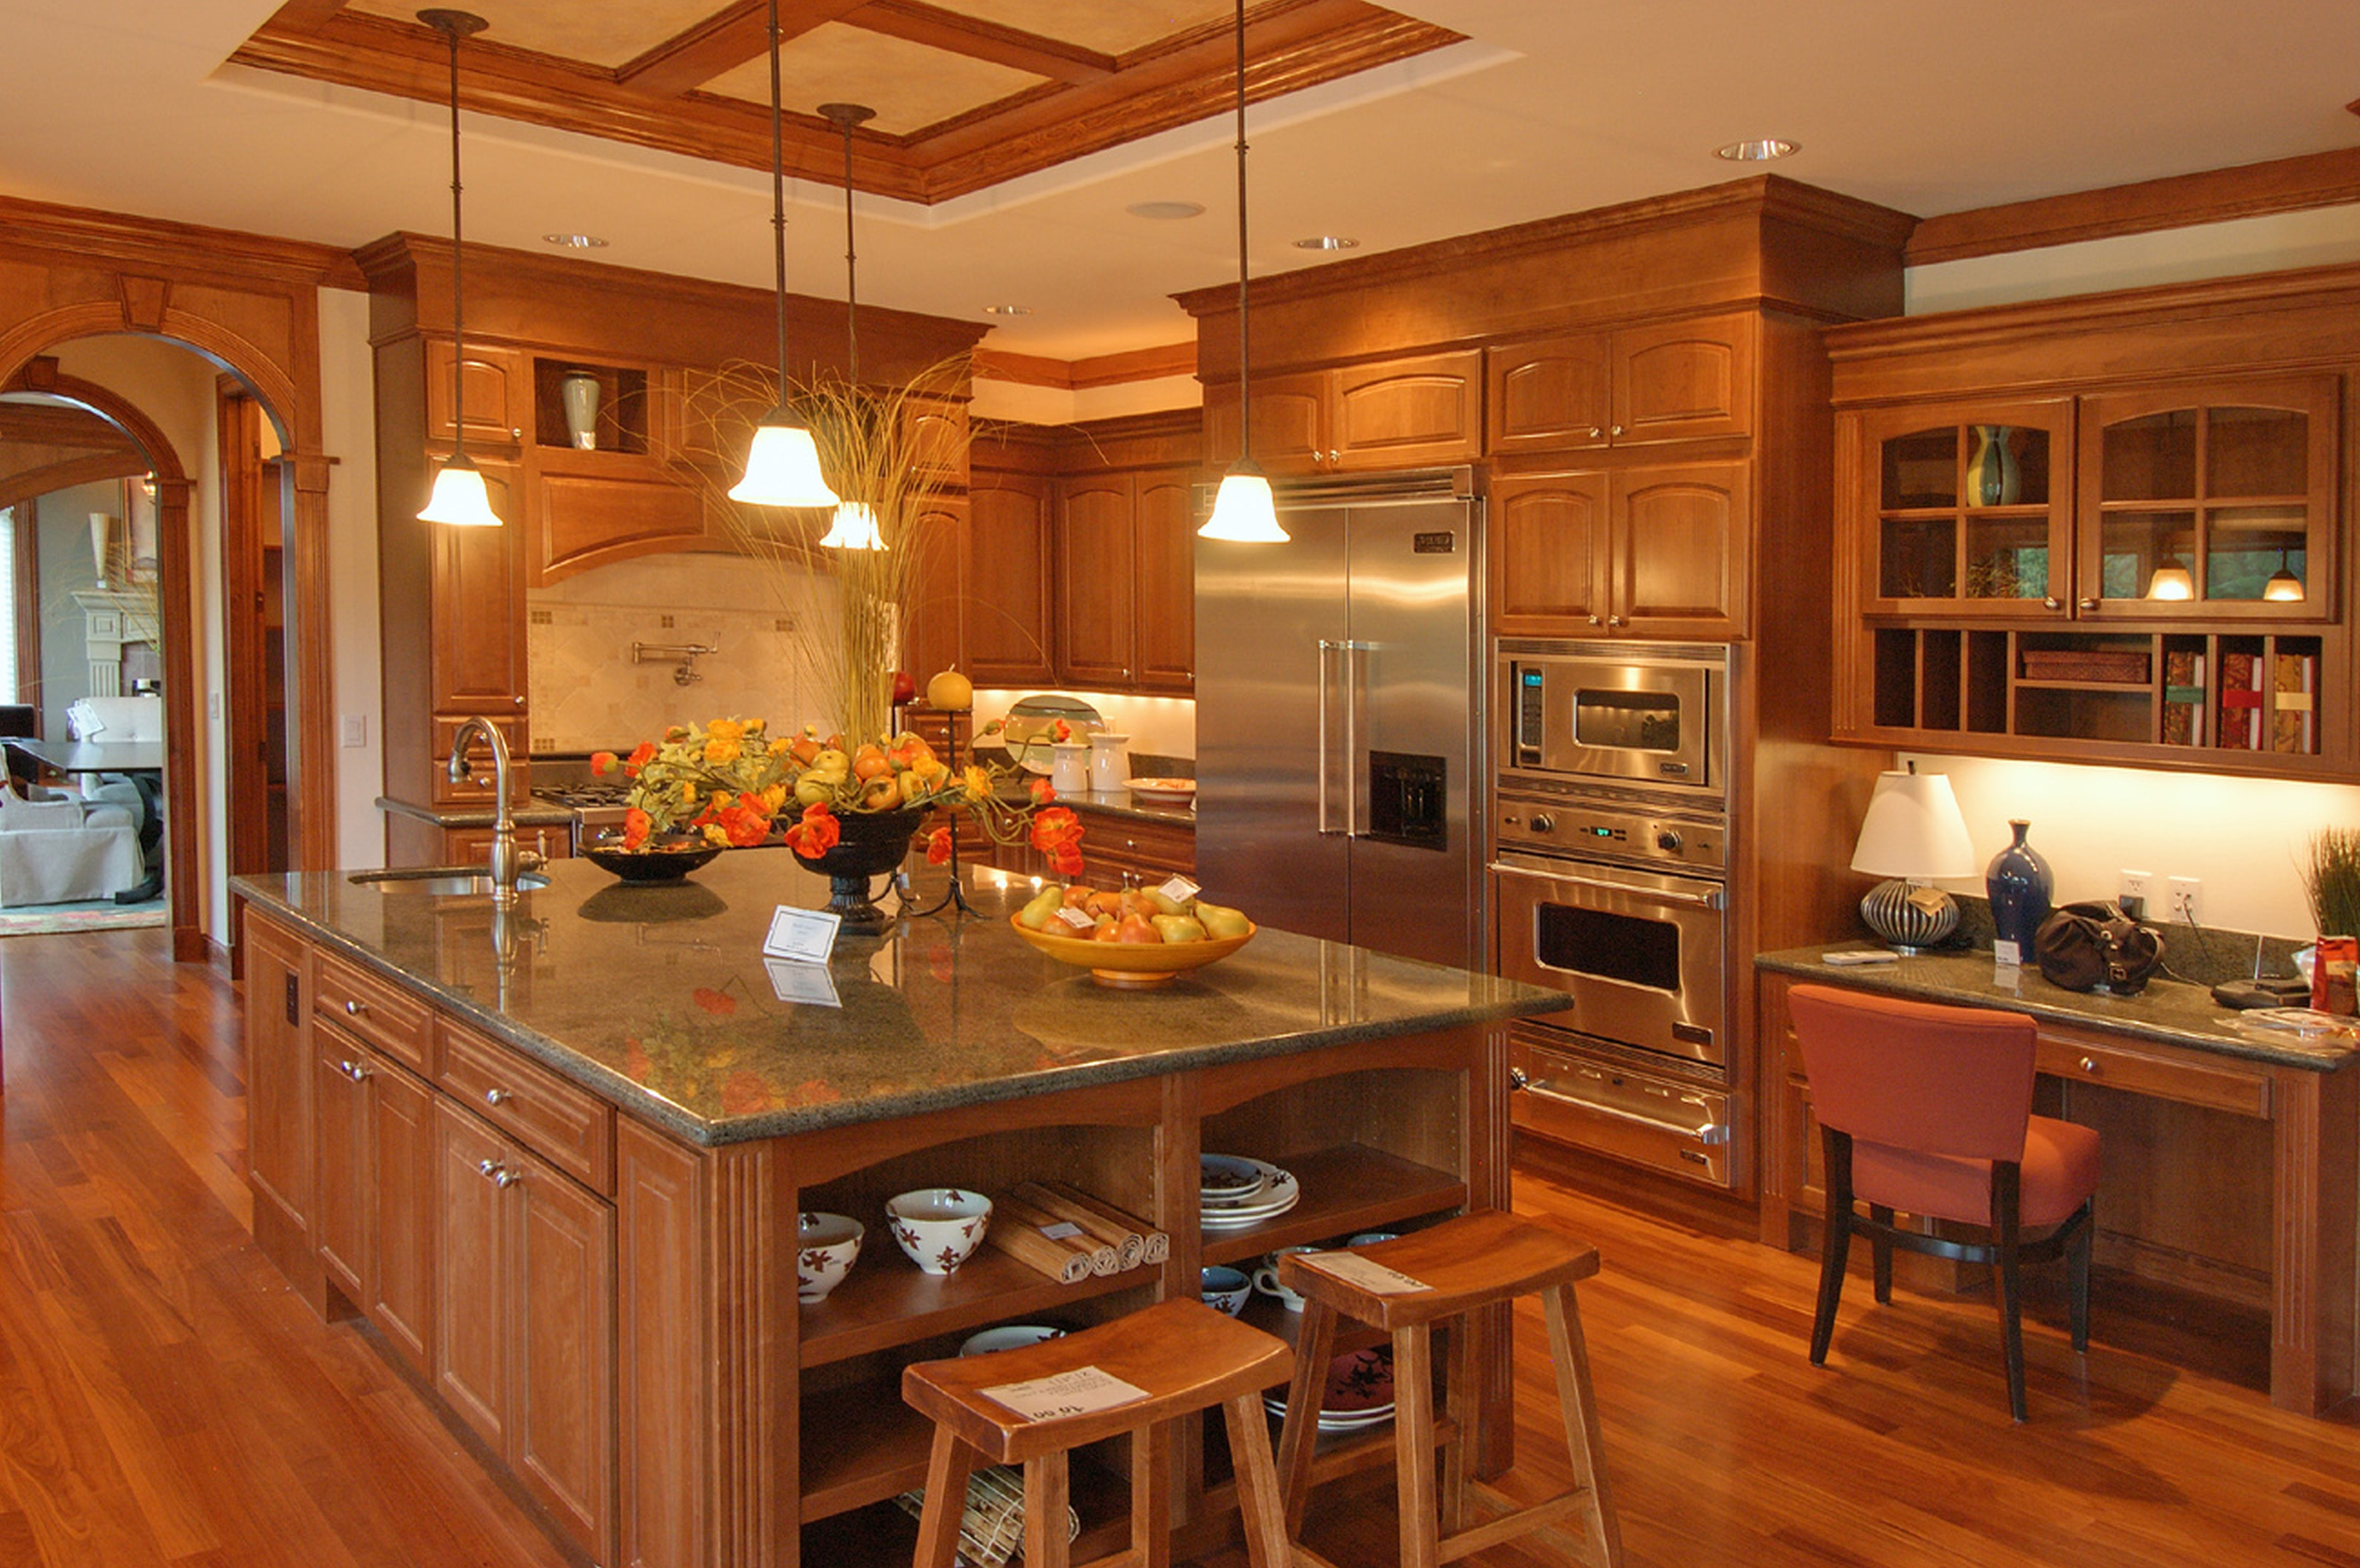 Custom Kitchen American Woodmark Cabinets In Peru With Fridge And Double Oven For Kitchen Furniture Ideas